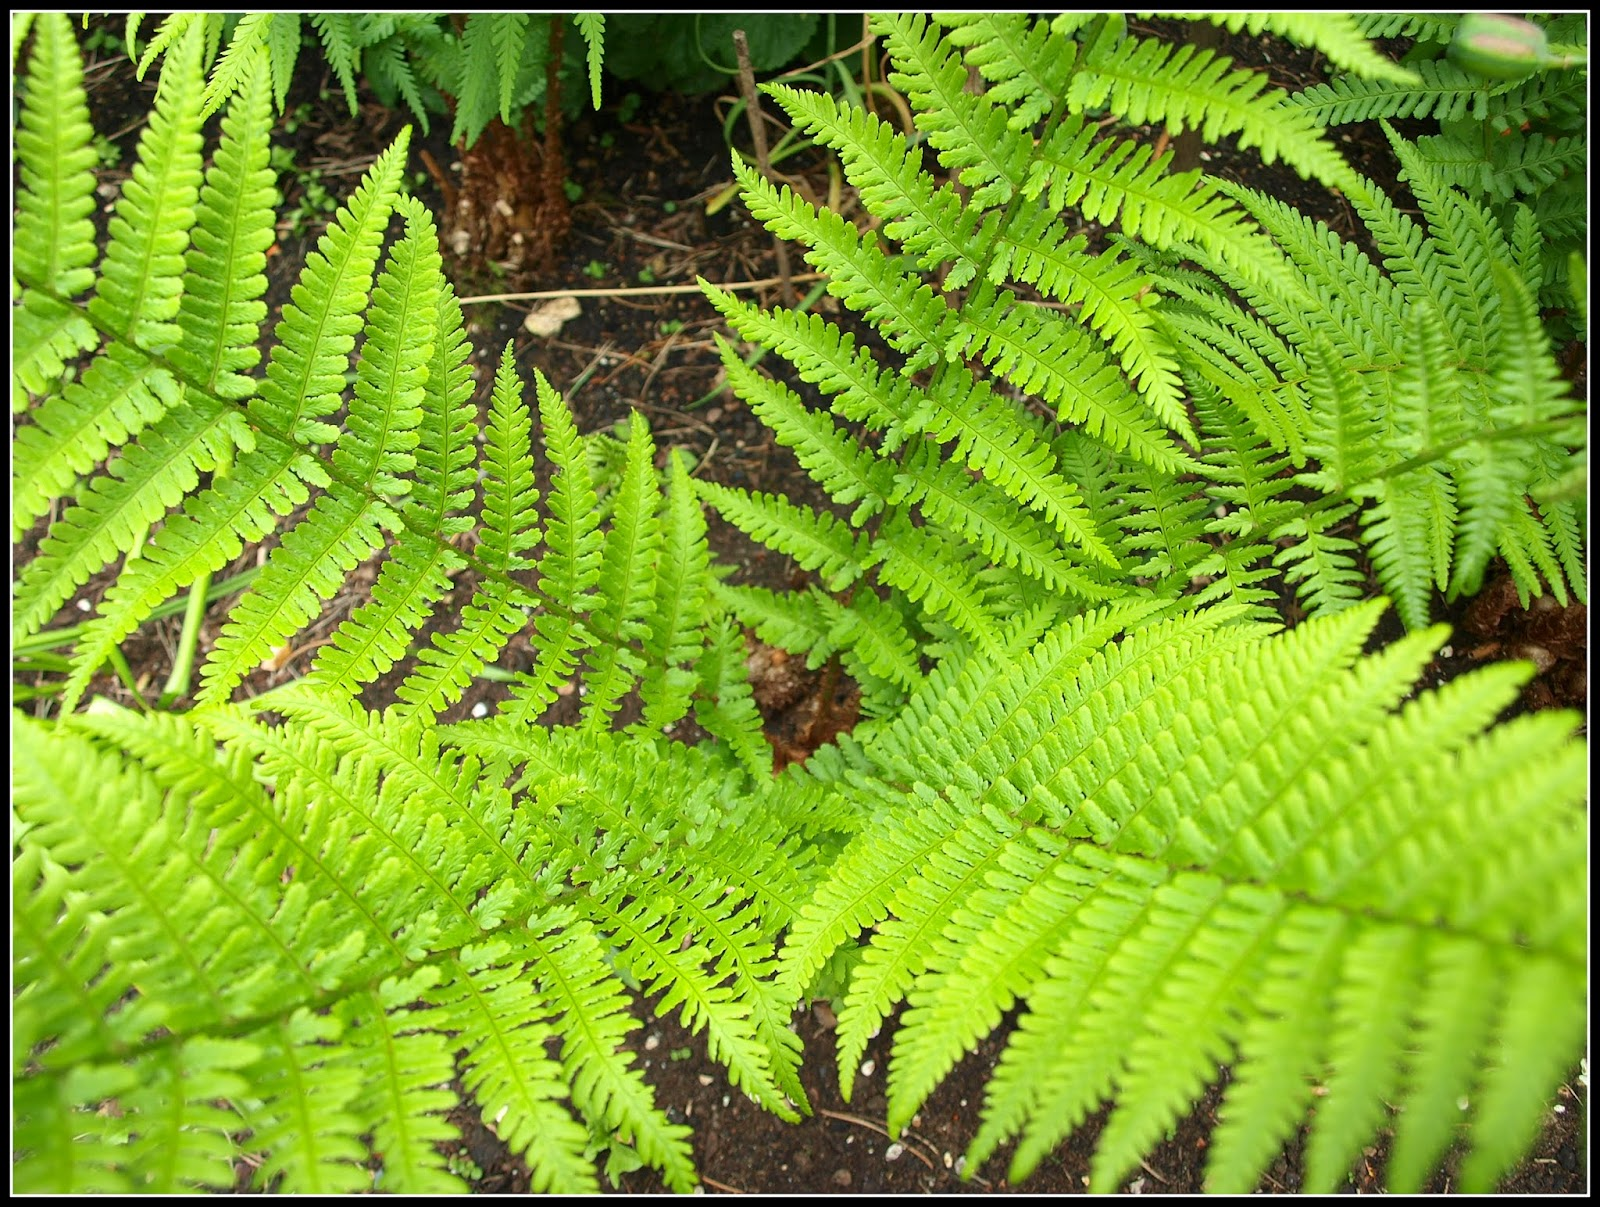 i donu0027t know much about ferns just that there are hundreds of different types so there is bound to be one suitable for just about every different type of - Fern Types